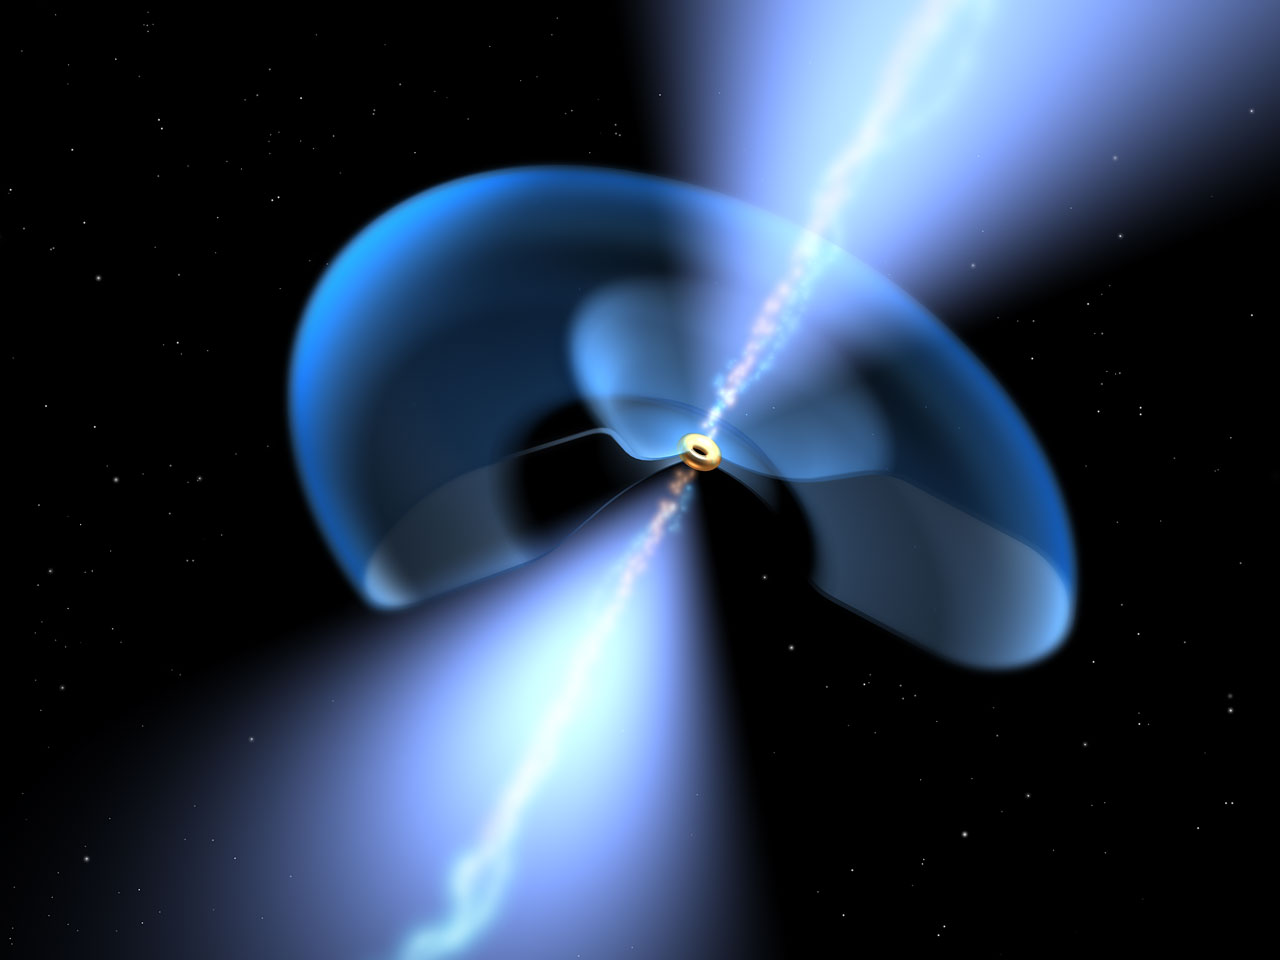 Dissecting a dusty black hole (artist's impression)